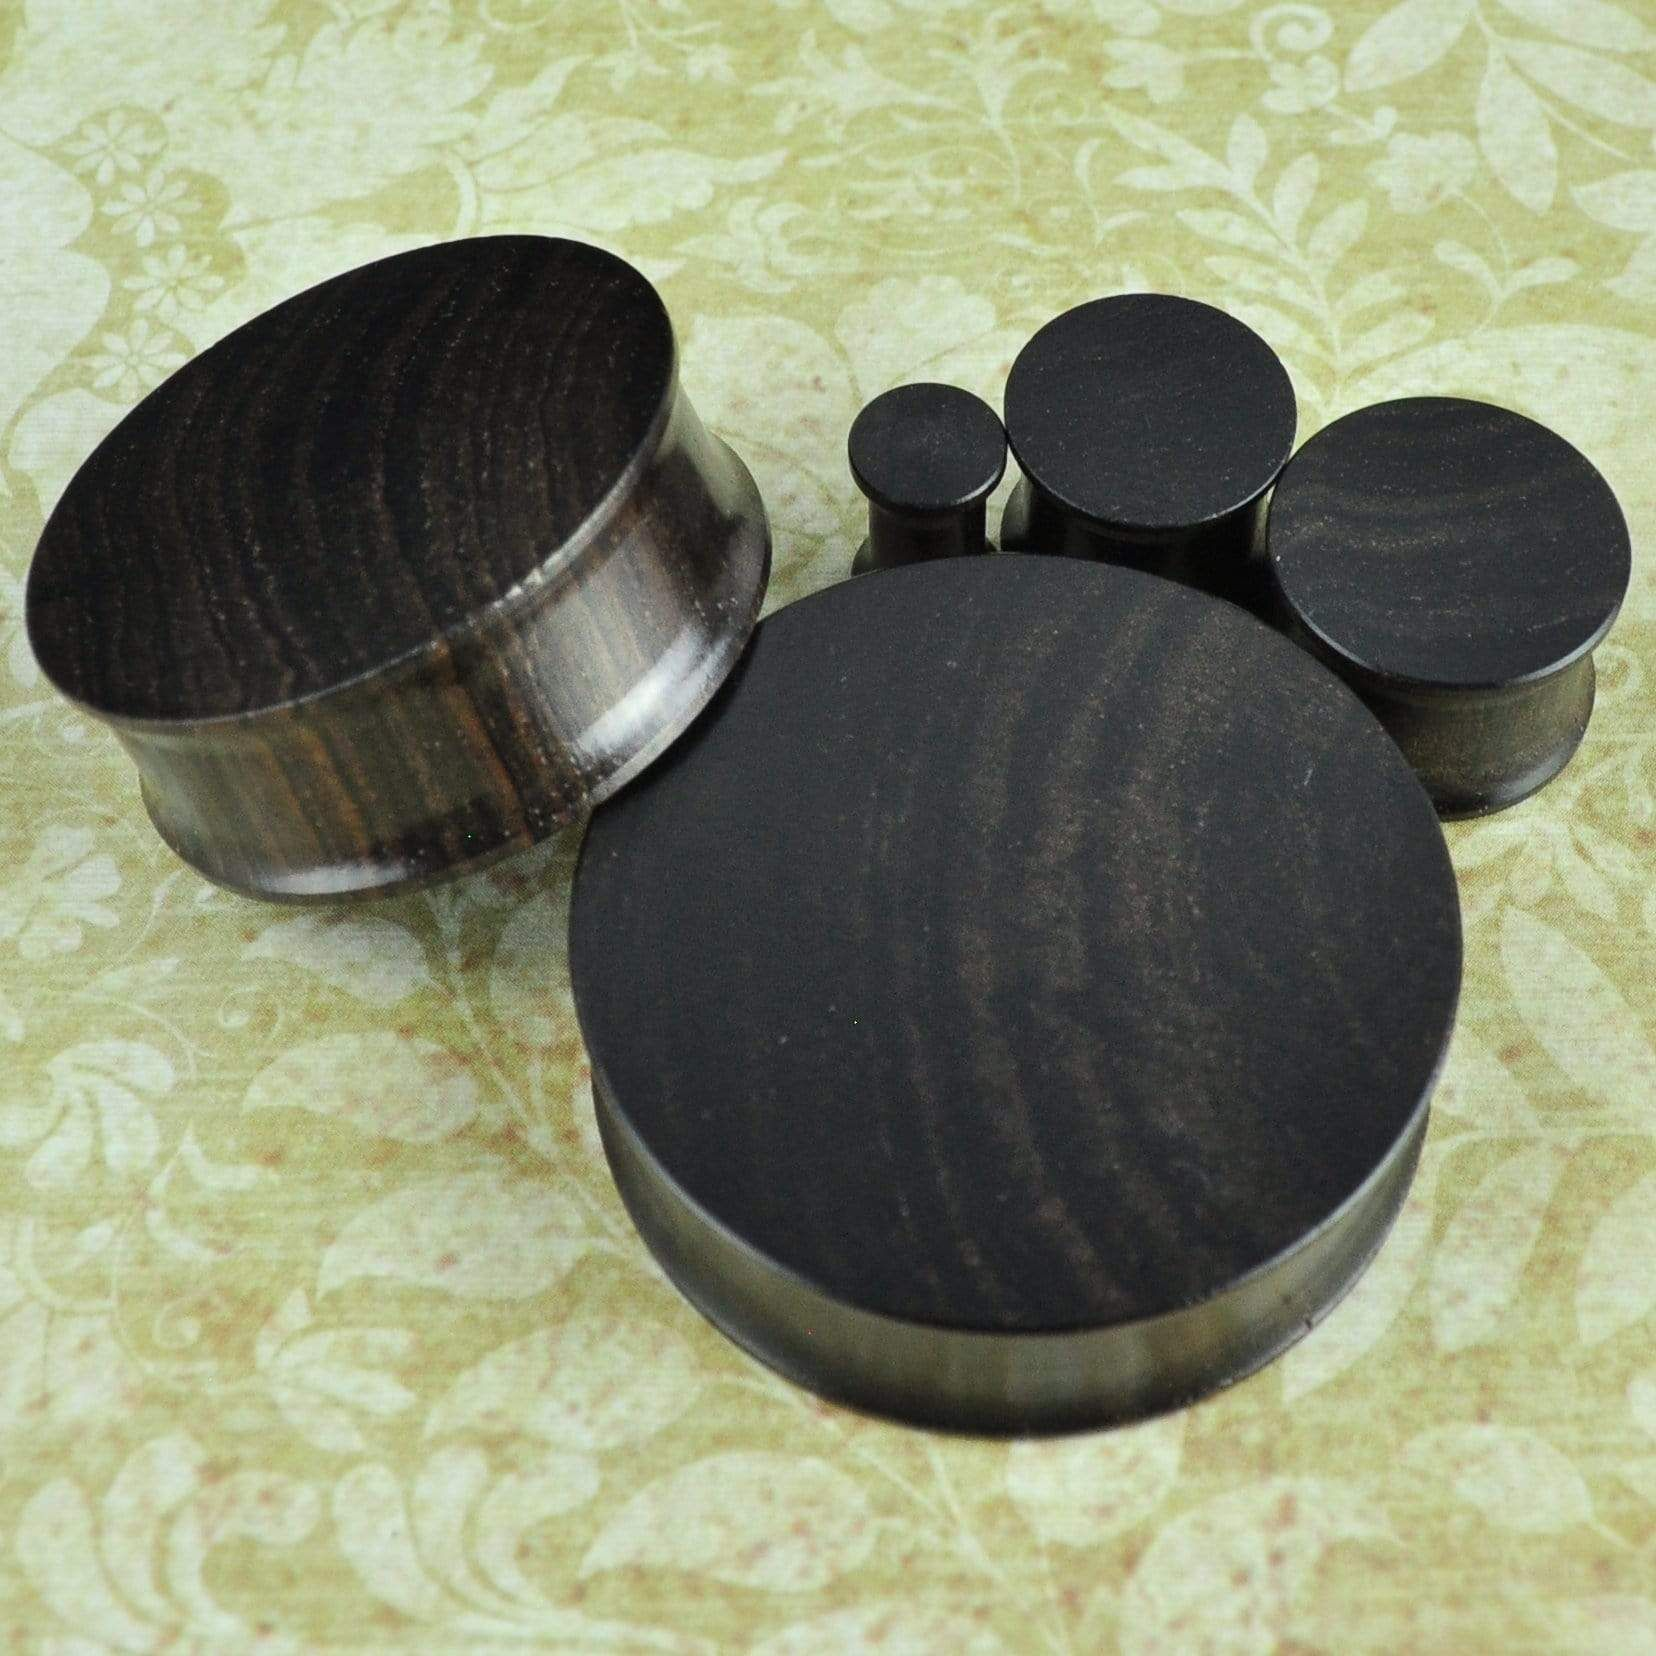 Quantity: Sold as 1 pair (2 pieces) Style: Round cut plug, flat sides Material: Ebony wood Flare: Double flare Size Options: 6-38mm (upon availability) Size: Size ordered is wearable area +/- 1mm Wearable Width: 7mm Natural Material: SIZES ARE NOT EXACT; CAN BE +/- 1MM Natural Material: COLORS AND PATTERNS MAY VARY Lightweight rich dark ebony wood double flare plugs Made of rich-colored dark ebony wood, these double flare plugs give off an earthy vibe. The innate imperfections of the wood make e